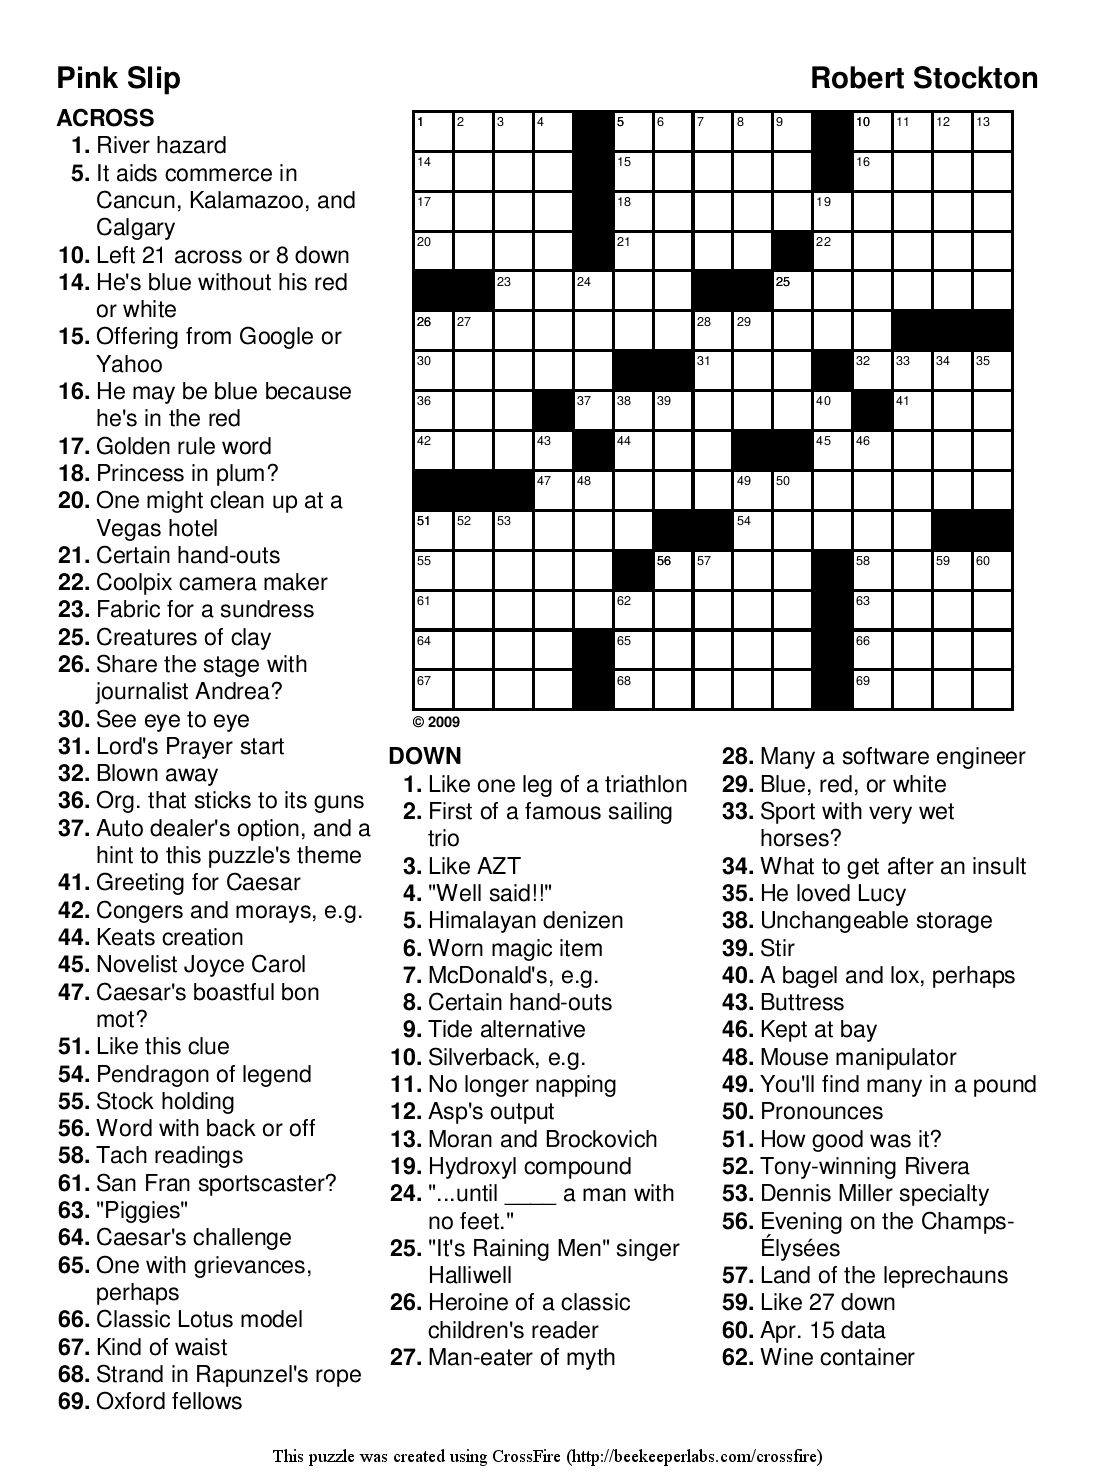 Printable Puzzles For Adults | Easy Word Puzzles Printable Festivals - Printable Crossword Puzzles For Adults With Answers